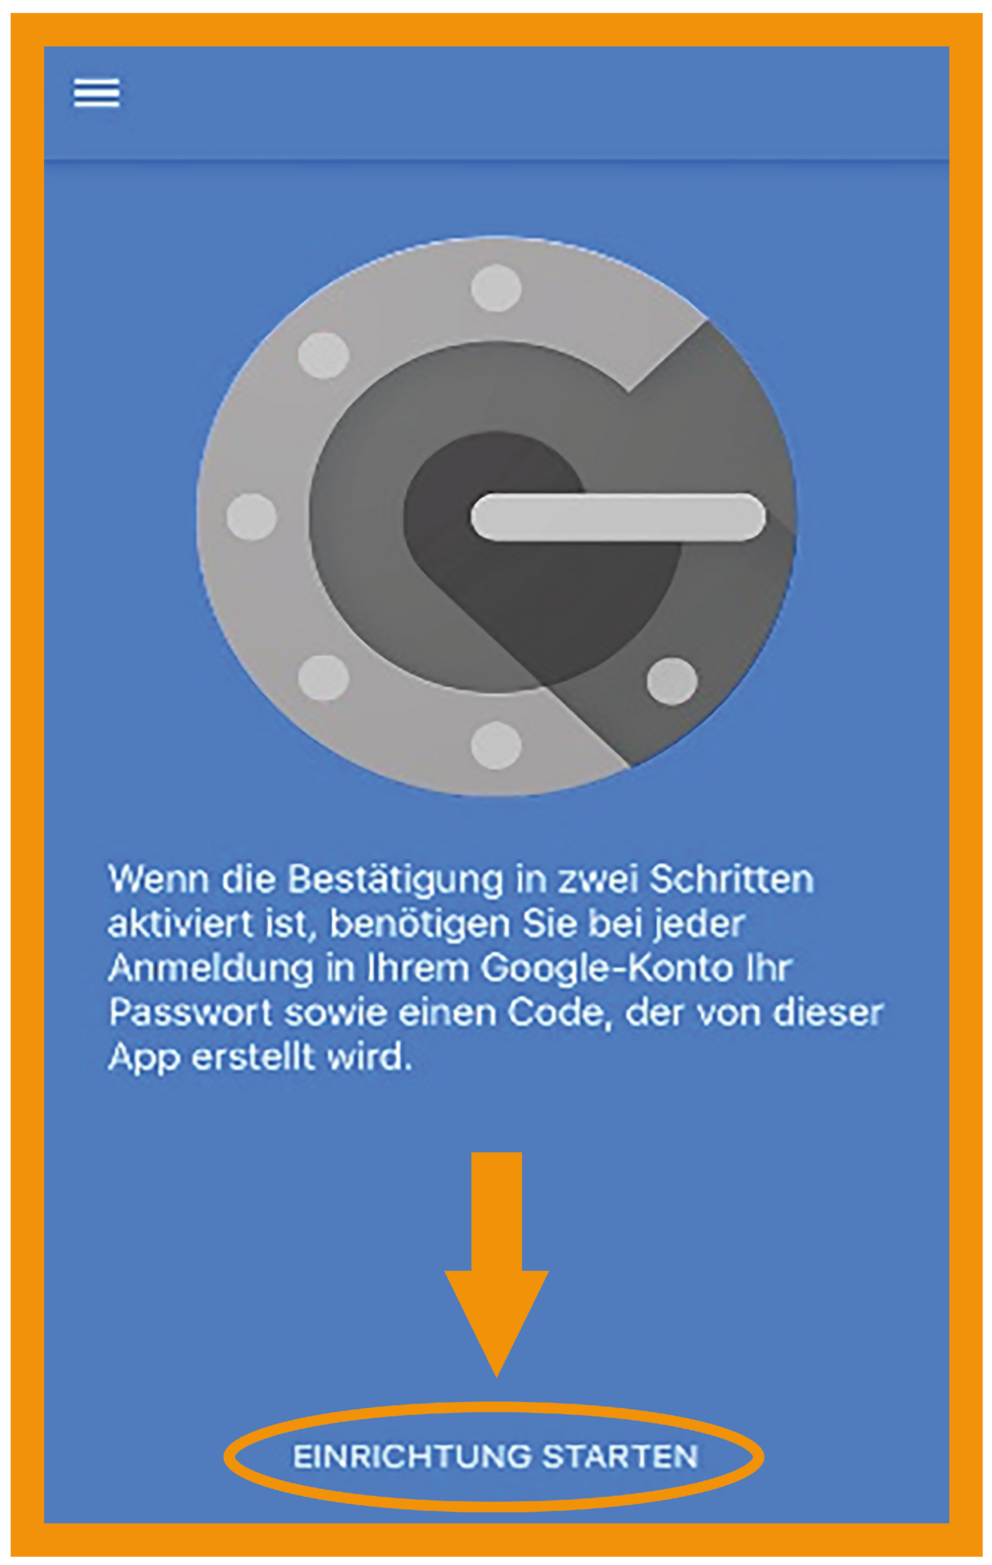 iOS Google Authenticator Schritt 2